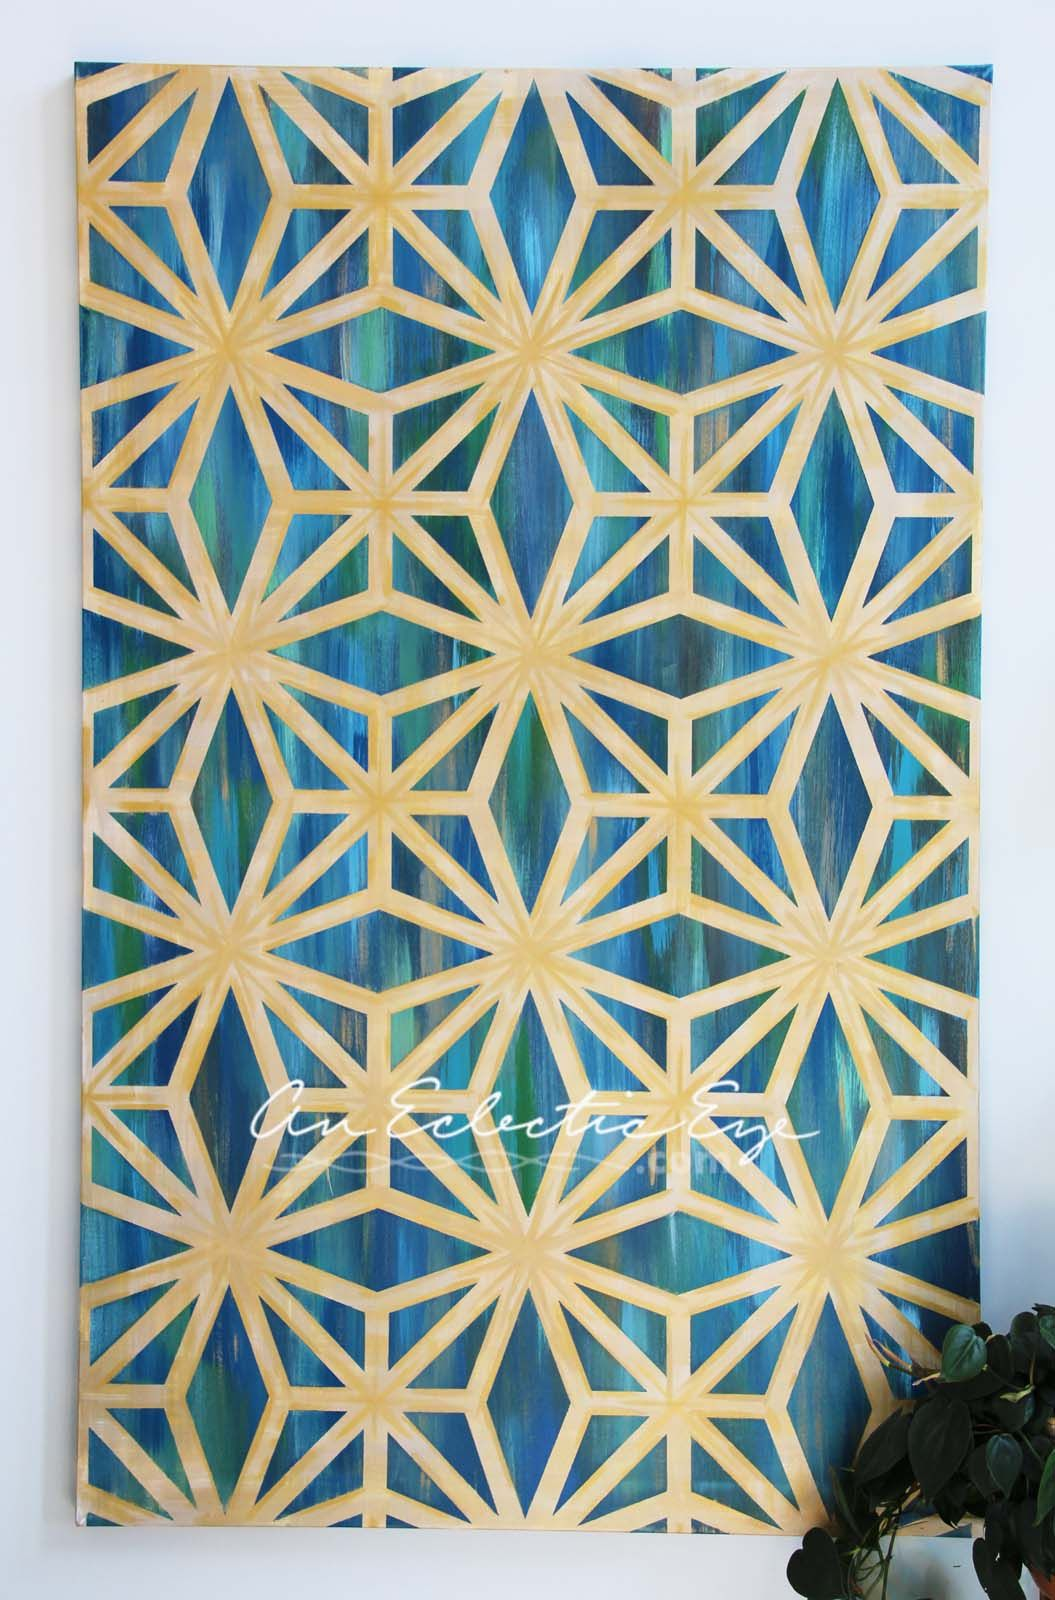 Diy Geometric Painting With Painters Tape Projects To Try